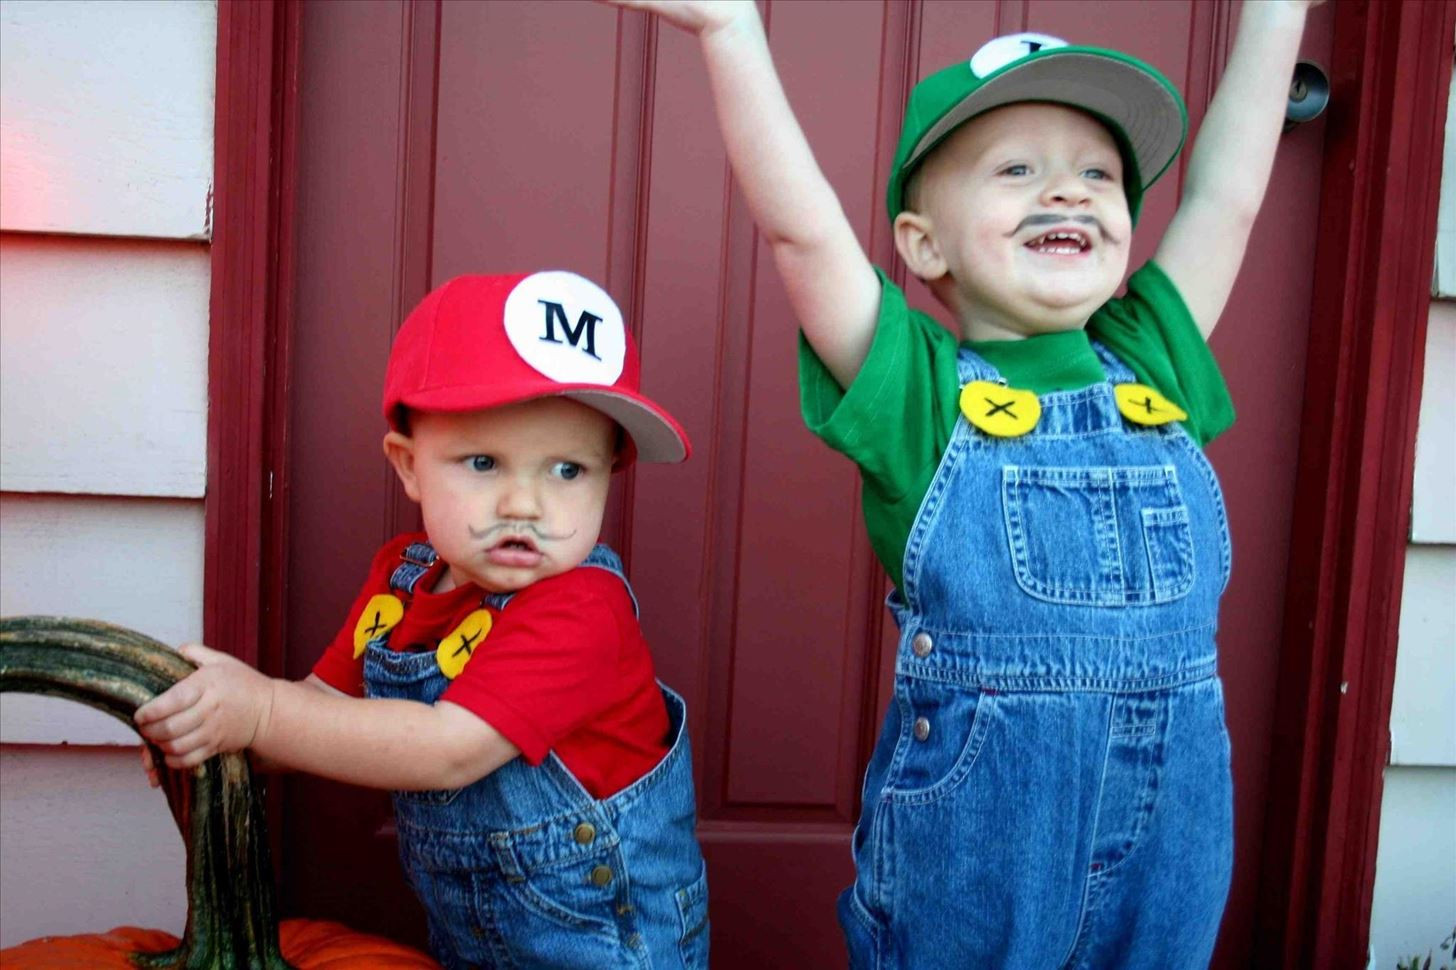 Best ideas about Easy DIY Halloween Costumes For Kids . Save or Pin 10 Cheap Easy & Awesome DIY Halloween Costumes for Kids Now.